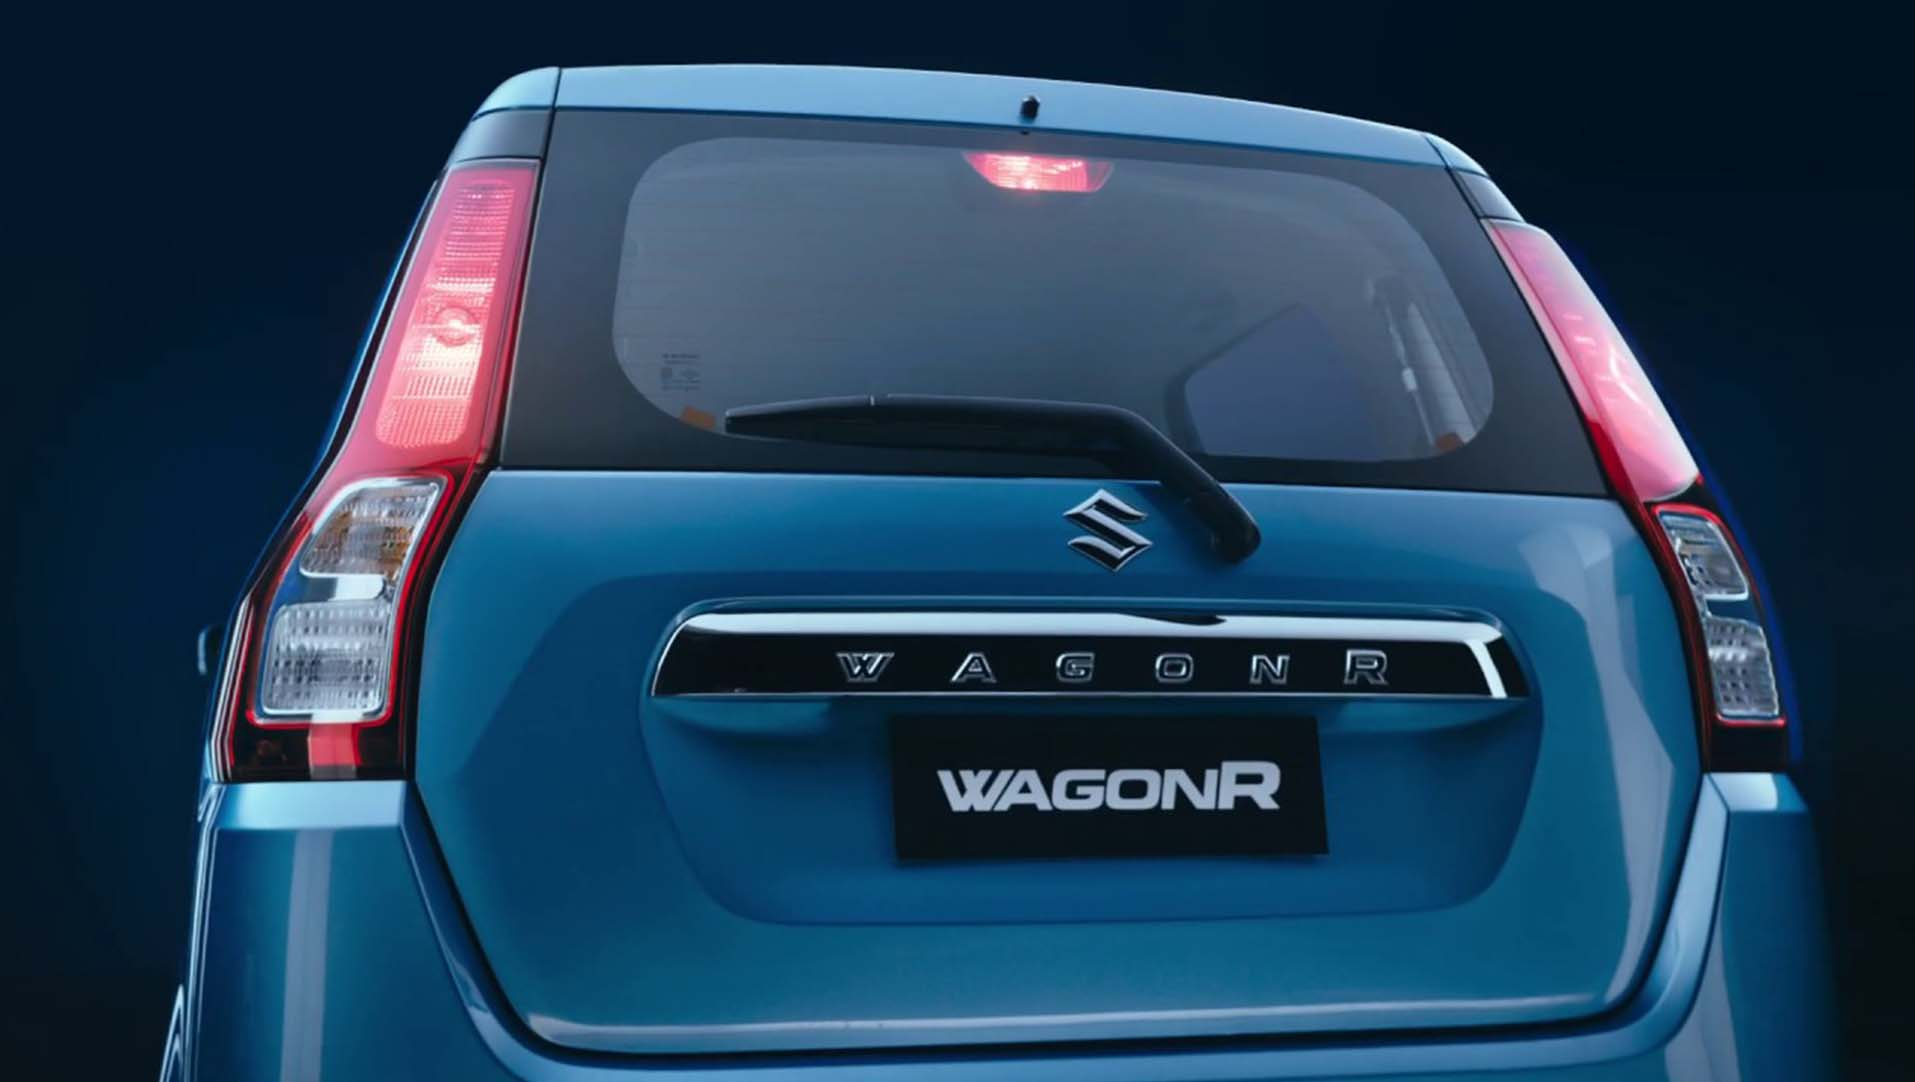 https://iciciauto.com/storage/upload/model_images/Maruti Wagon R - Taillight.jpg